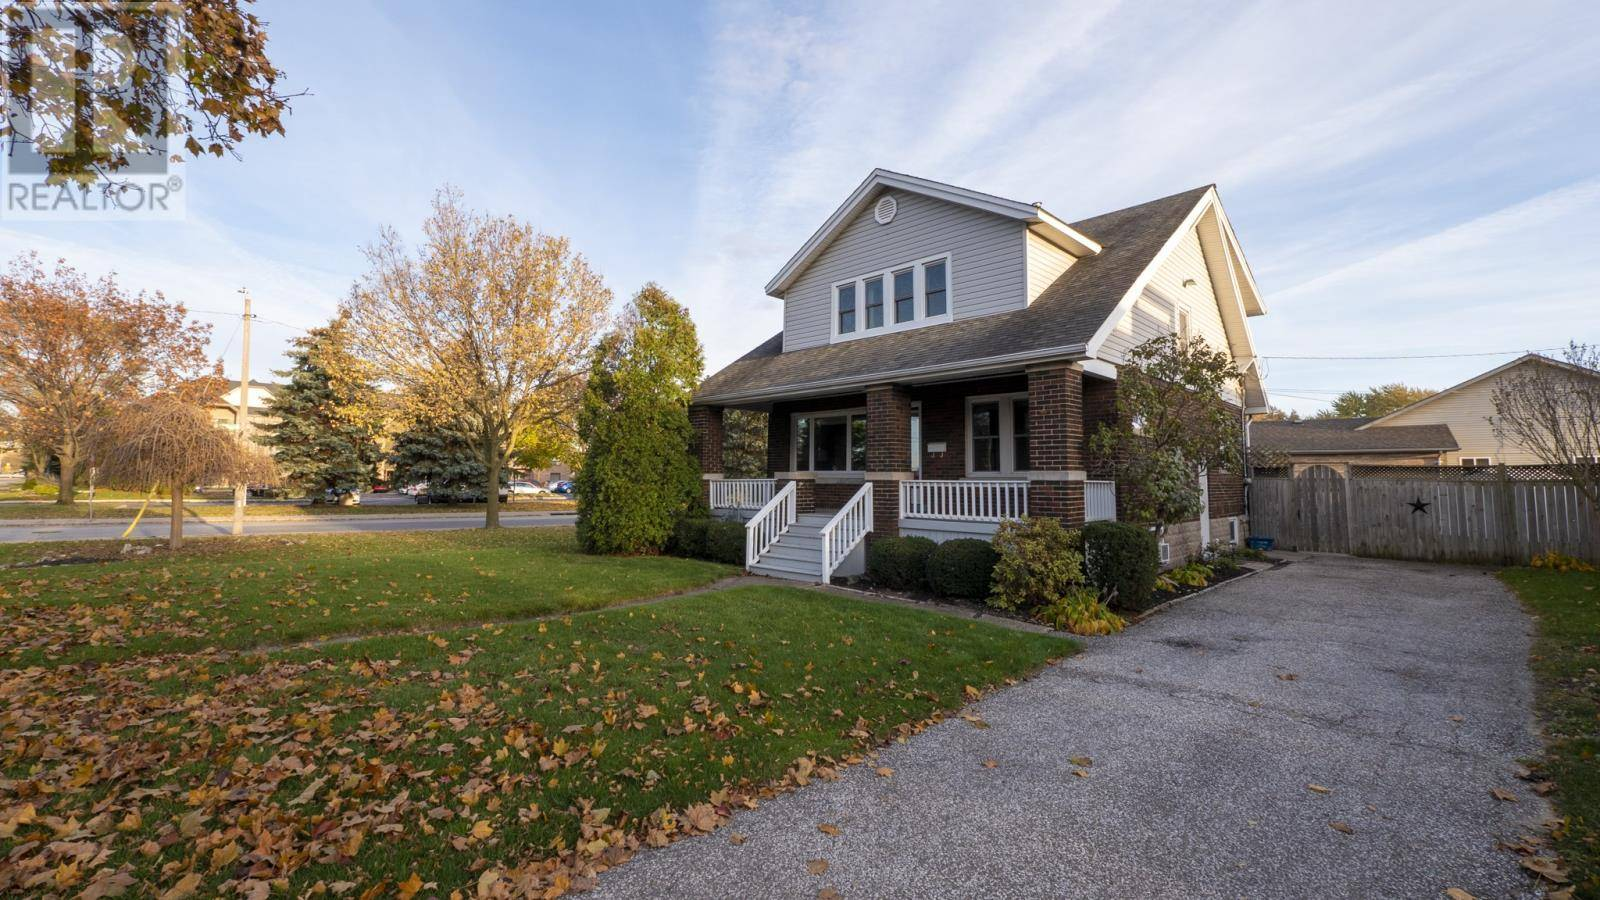 House for sale at 525 Grand Marais Rd West Windsor Ontario - MLS: 19028192